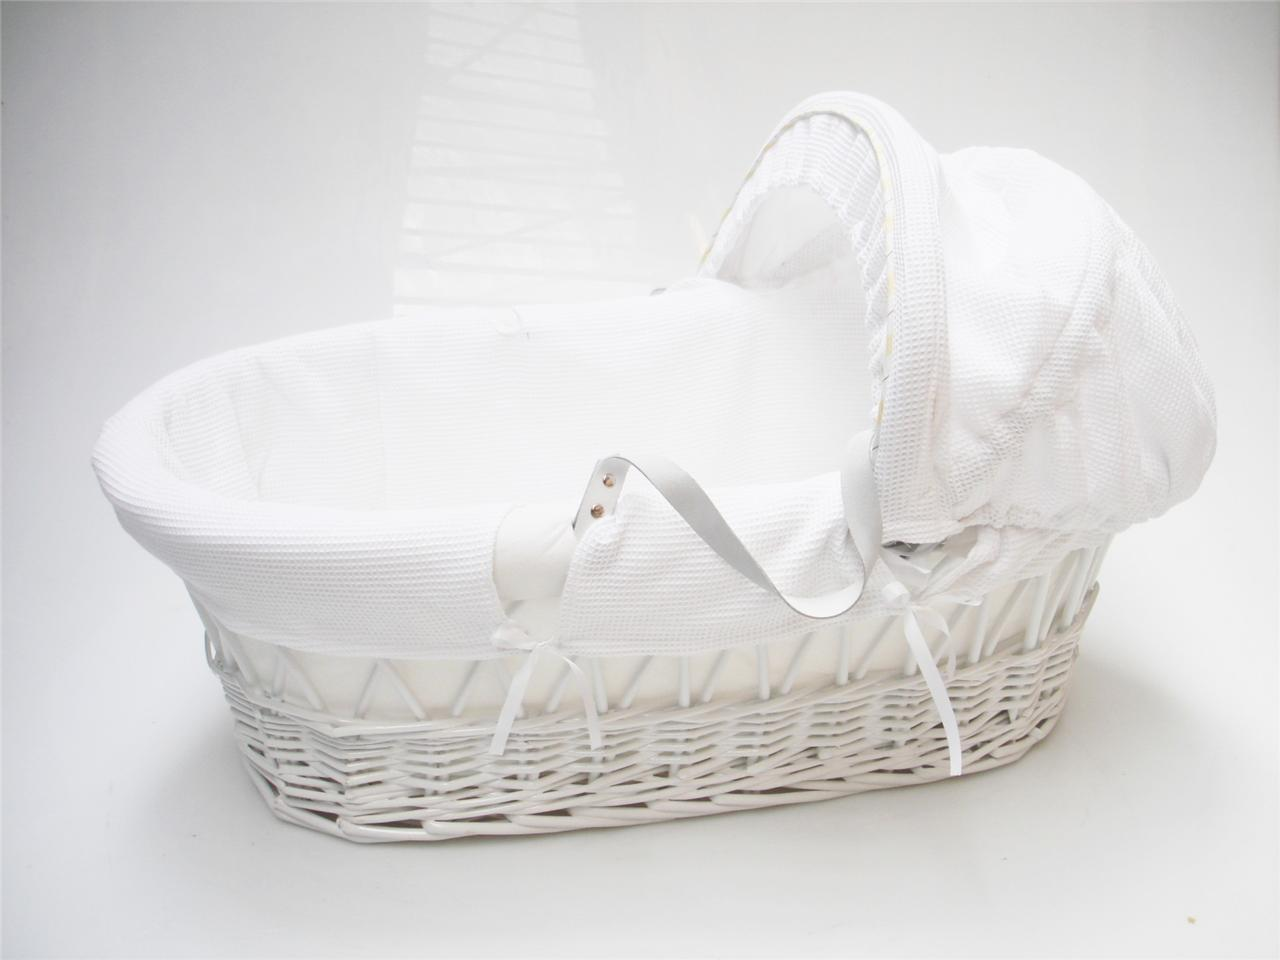 Wicker Basket Bassinet : Strong portable travel wicker new baby babies bassinet cot